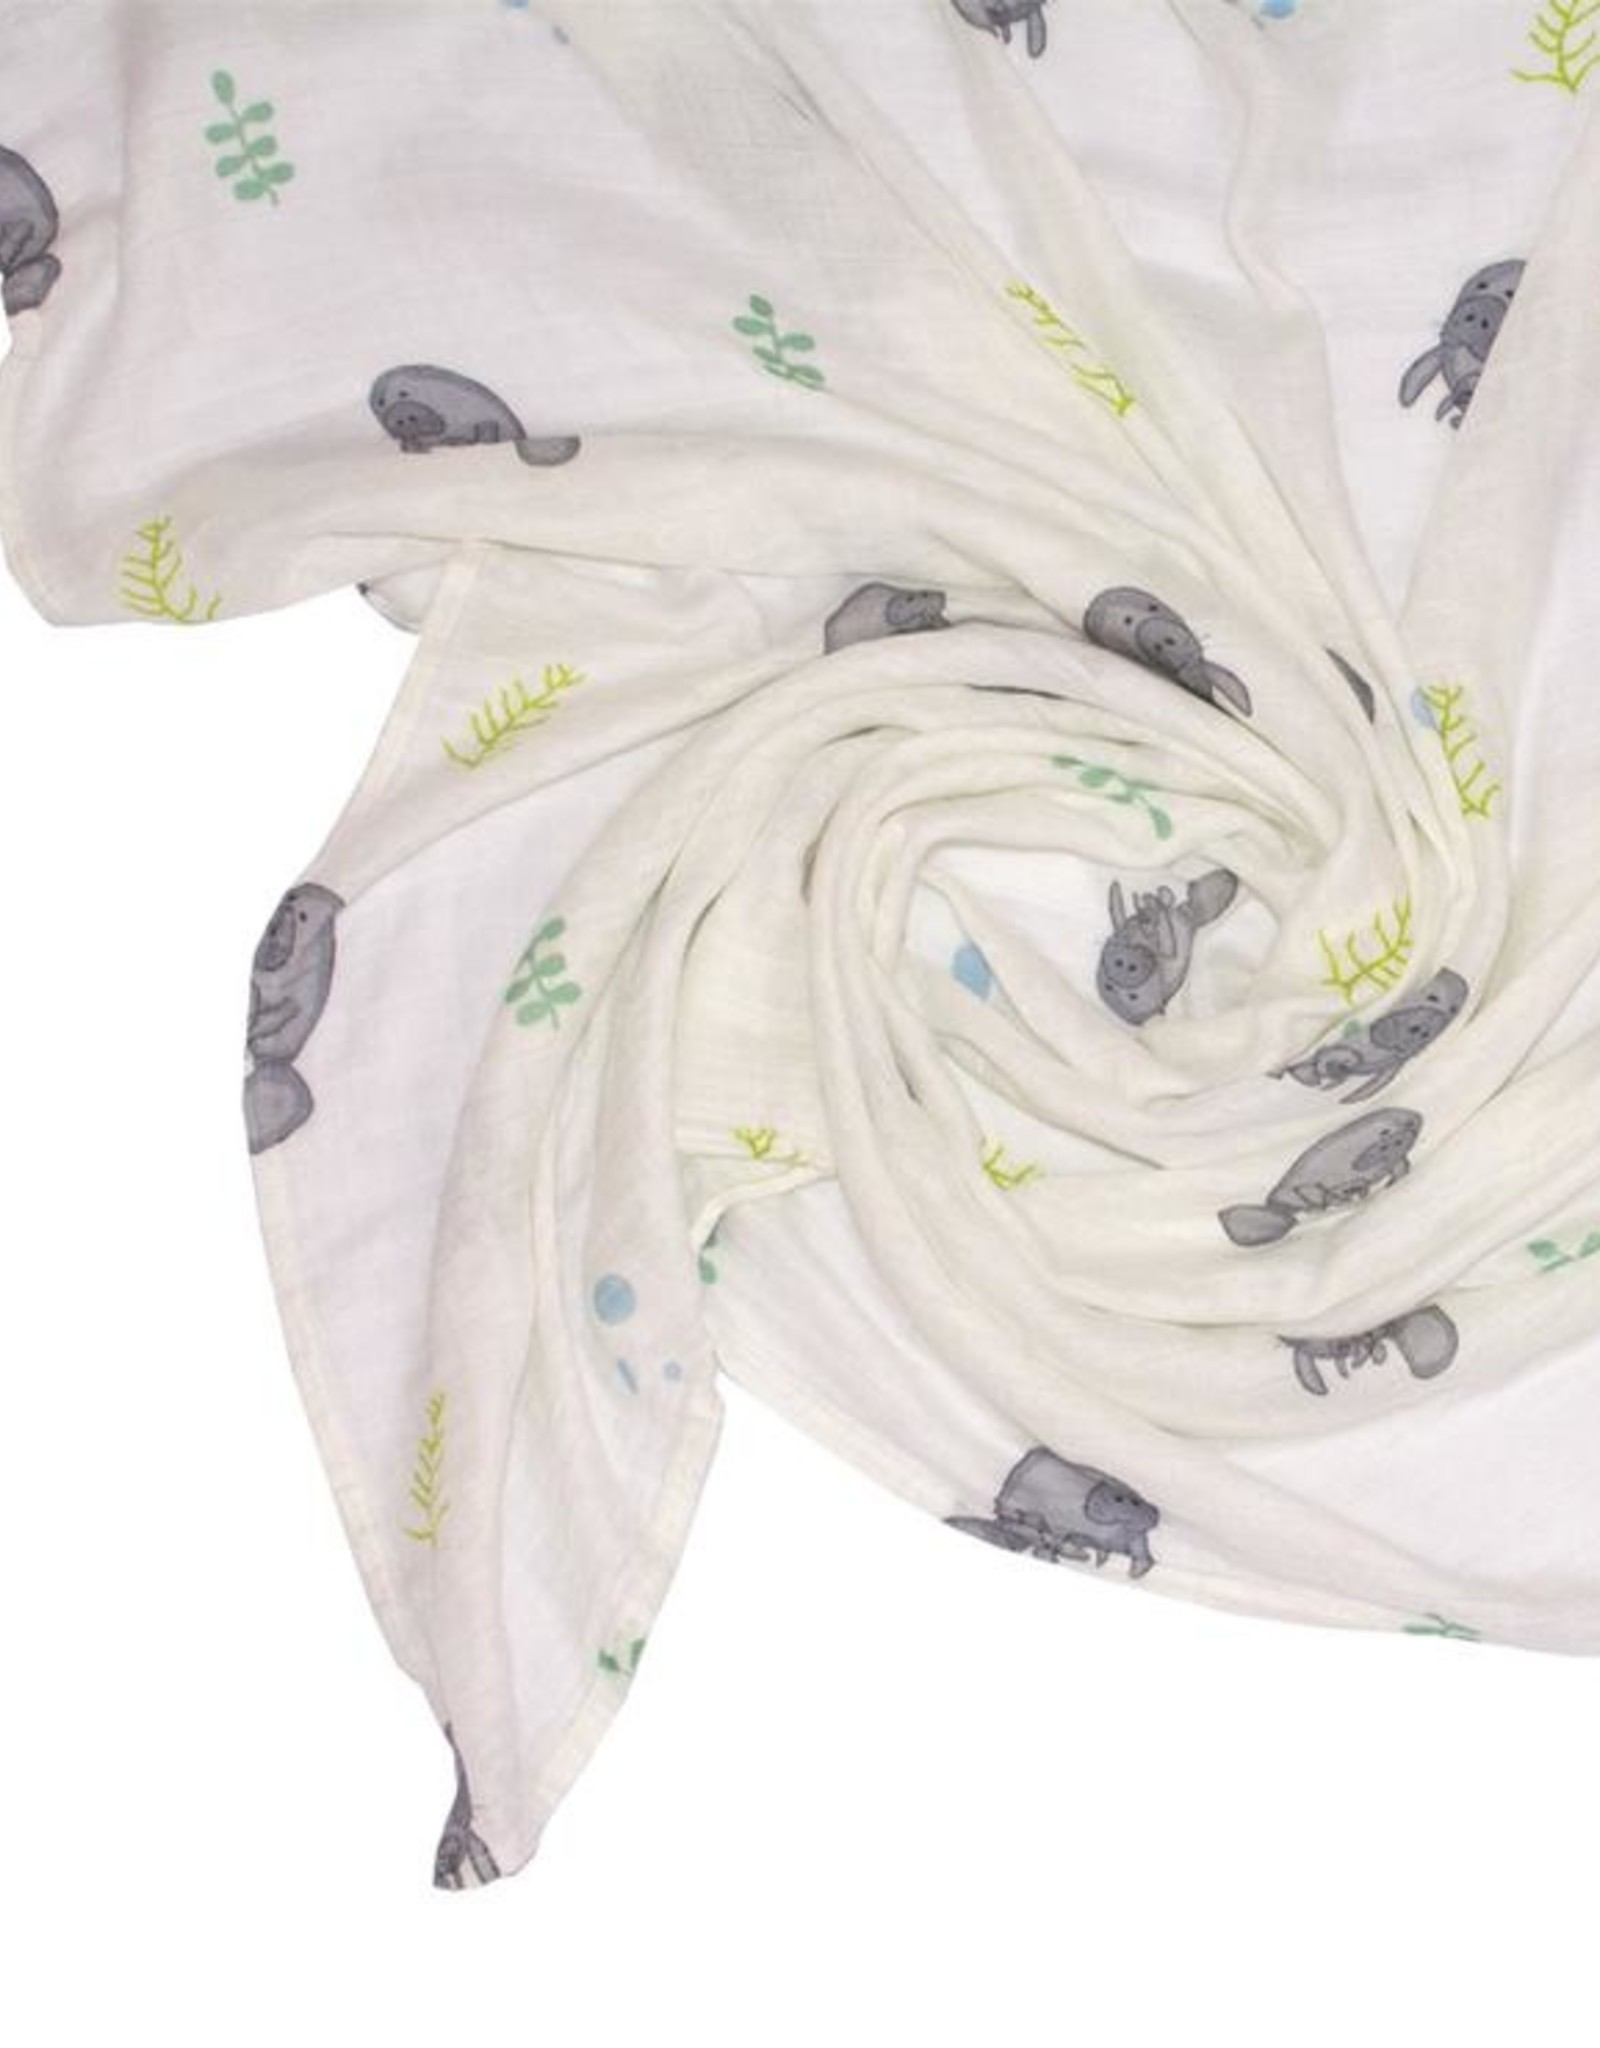 Florida Kid Co. Manatee Swaddle